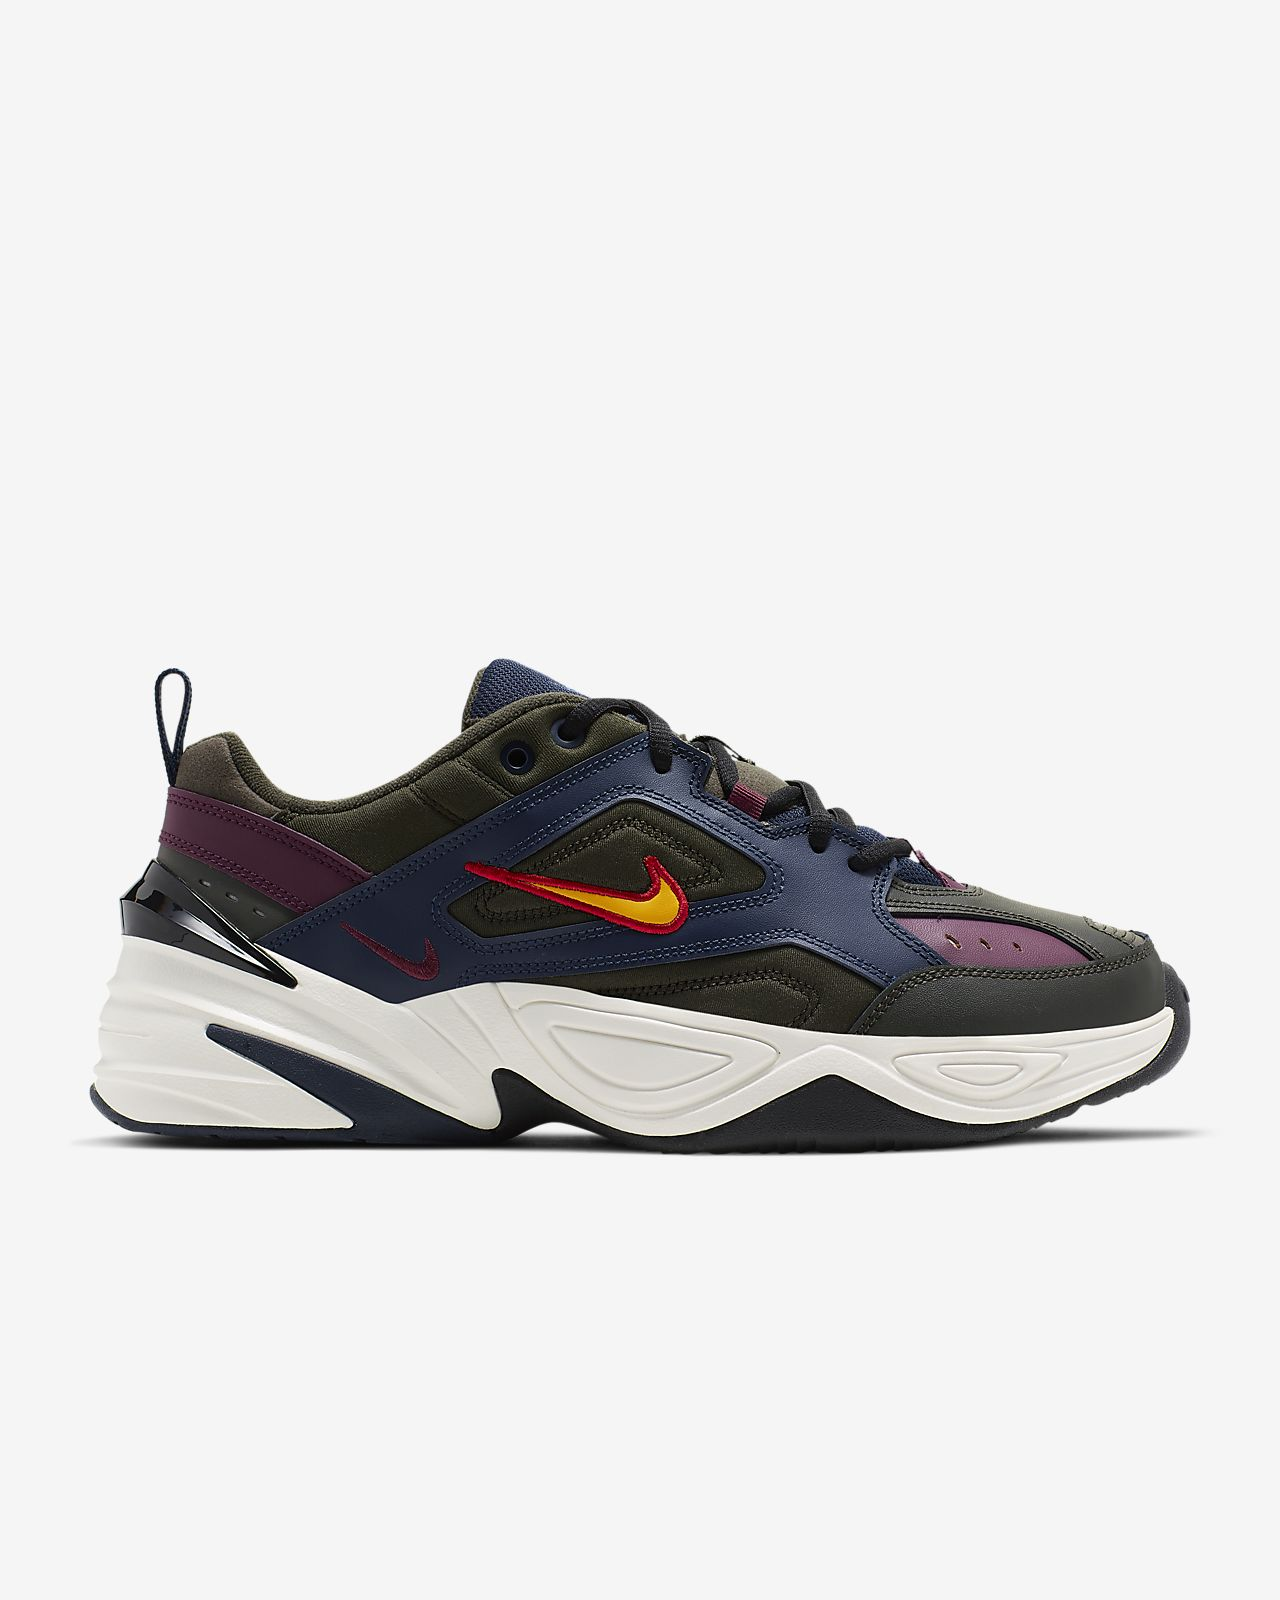 info for 86eca ddda2 12 Reasons to NOT to Buy Nike Court Royale (May 2019)   RunRepeat. Nike M2K  Tekno Men s Shoe. nike shoes for men price